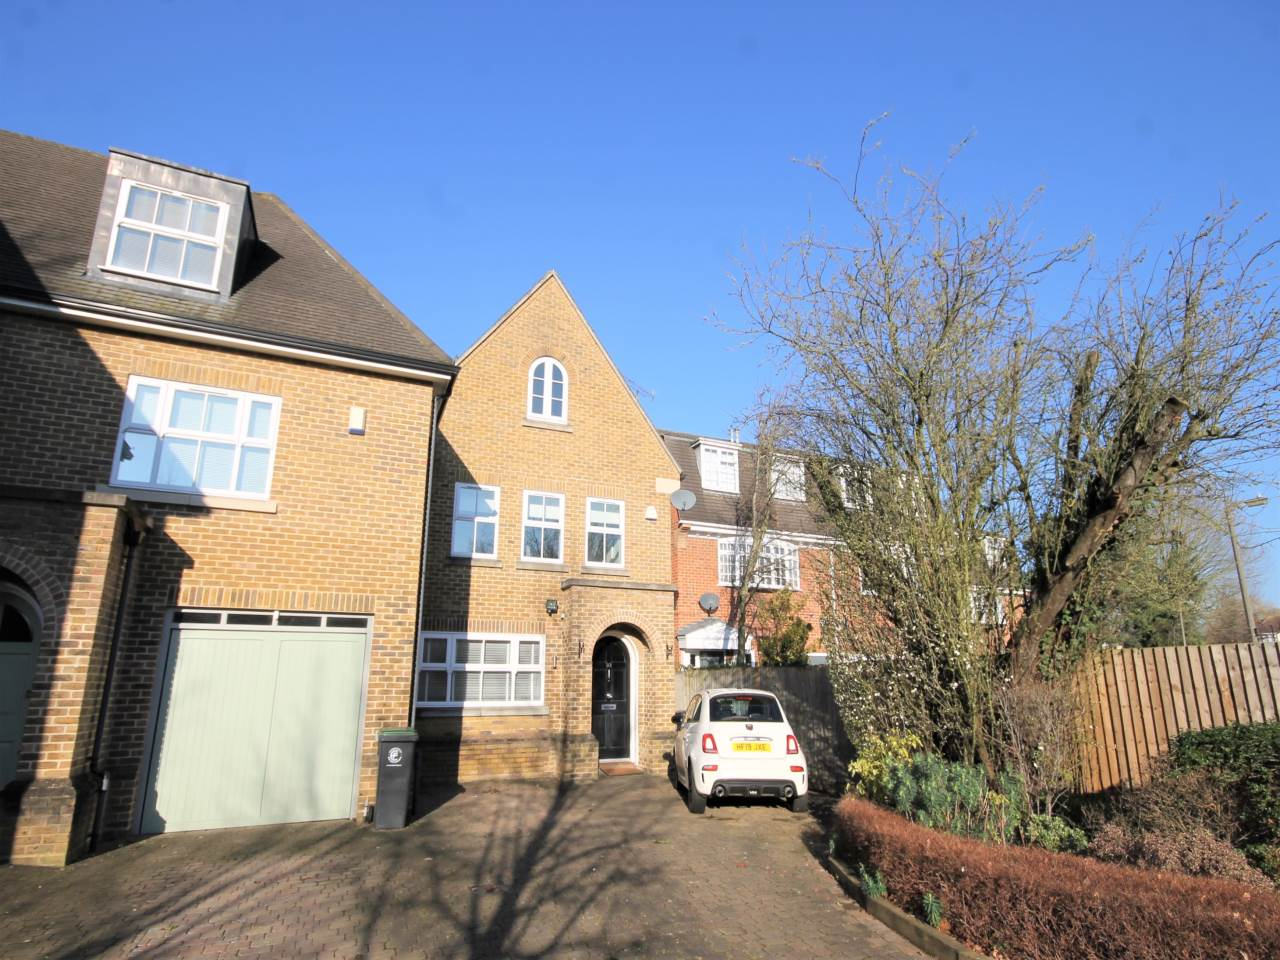 4 bed house to rent in Loughton - Property Image 1